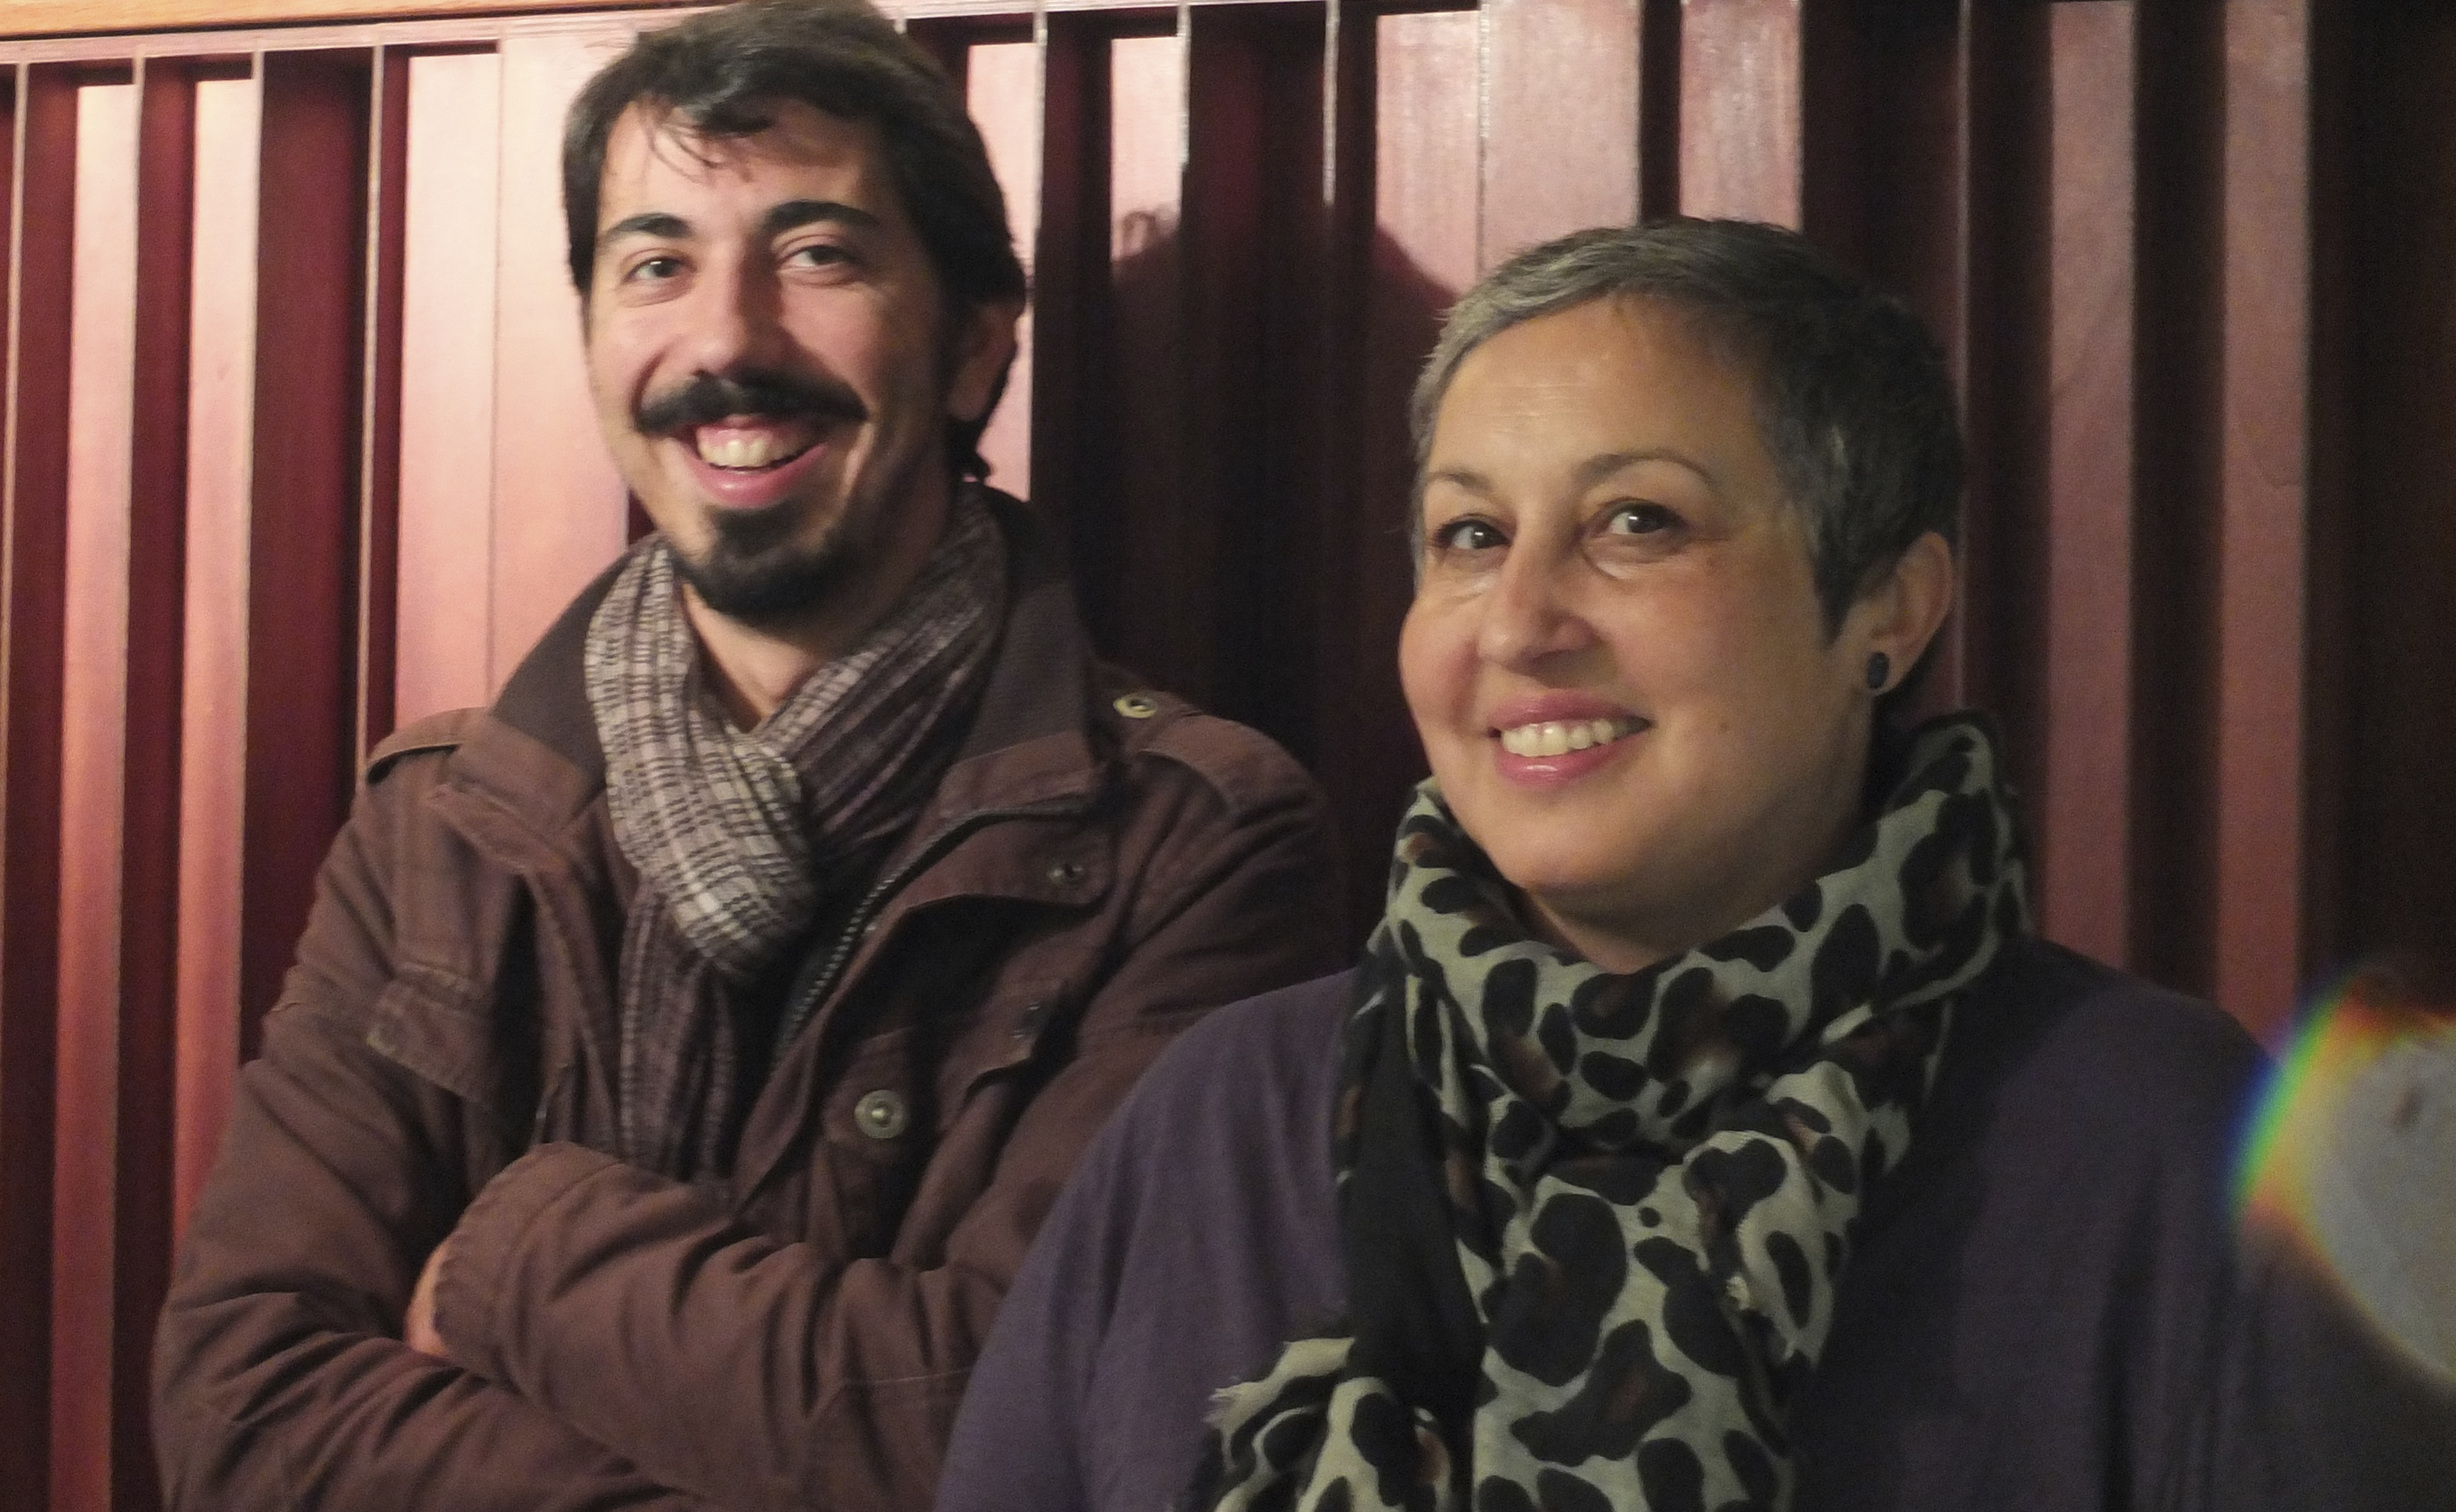 Guida de Palma and Luis Barrigas